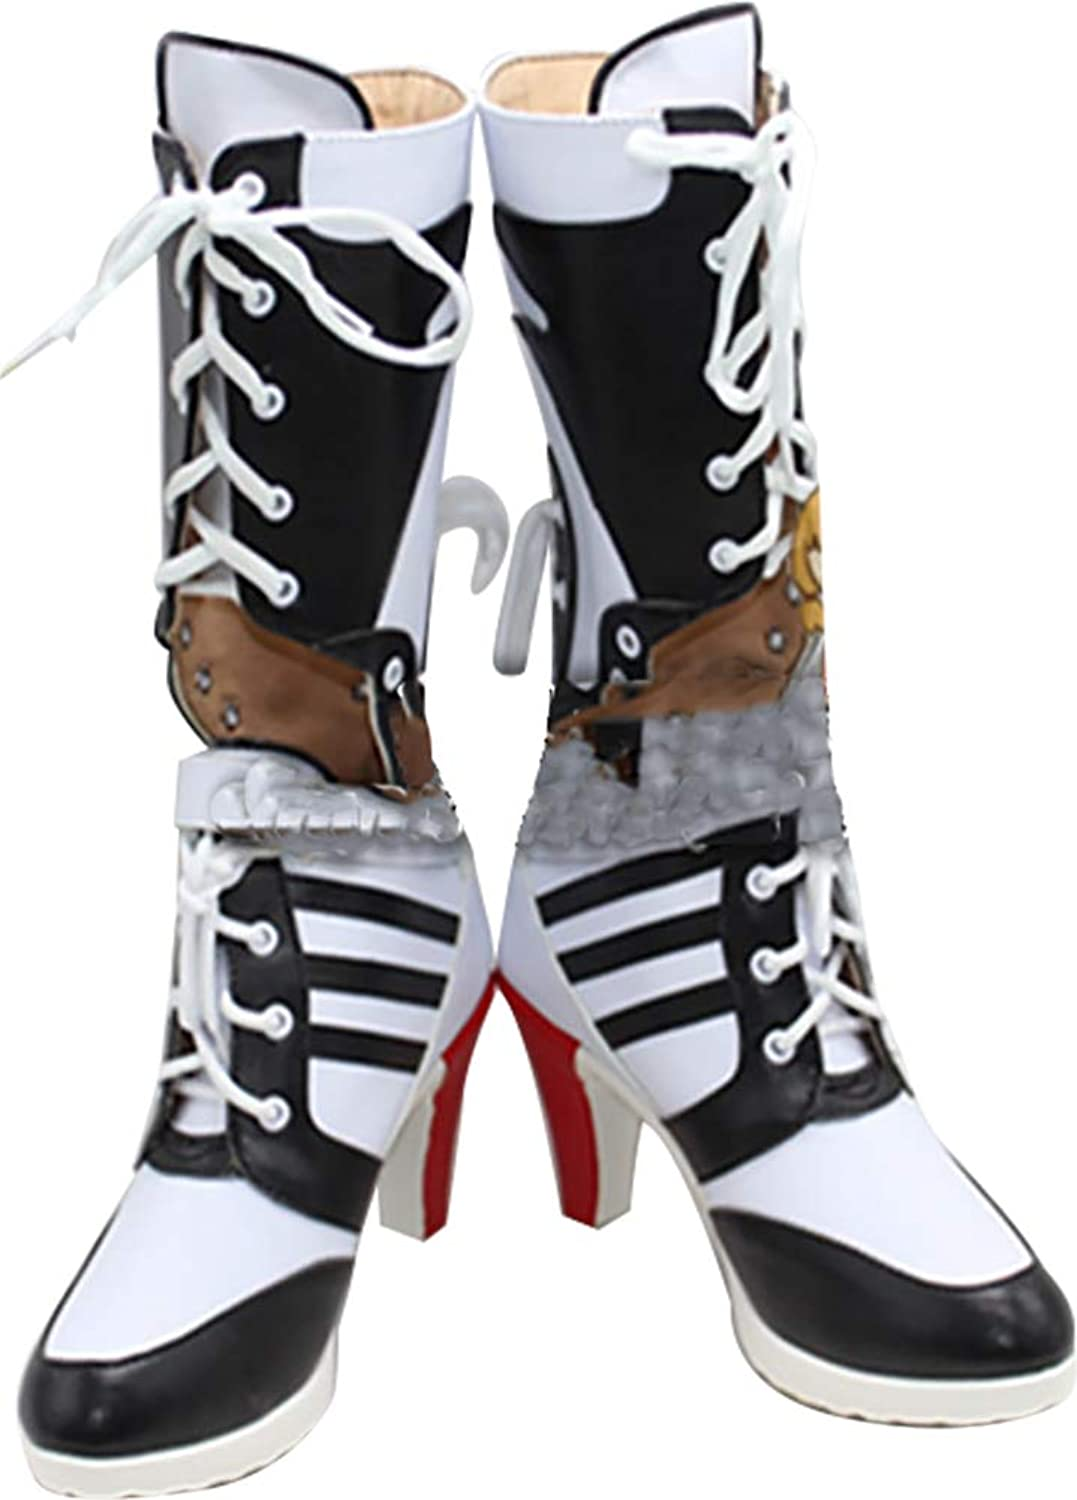 Whirl Cosplay Boots shoes for Batman Suicide Squad Harley Quinn High Heel